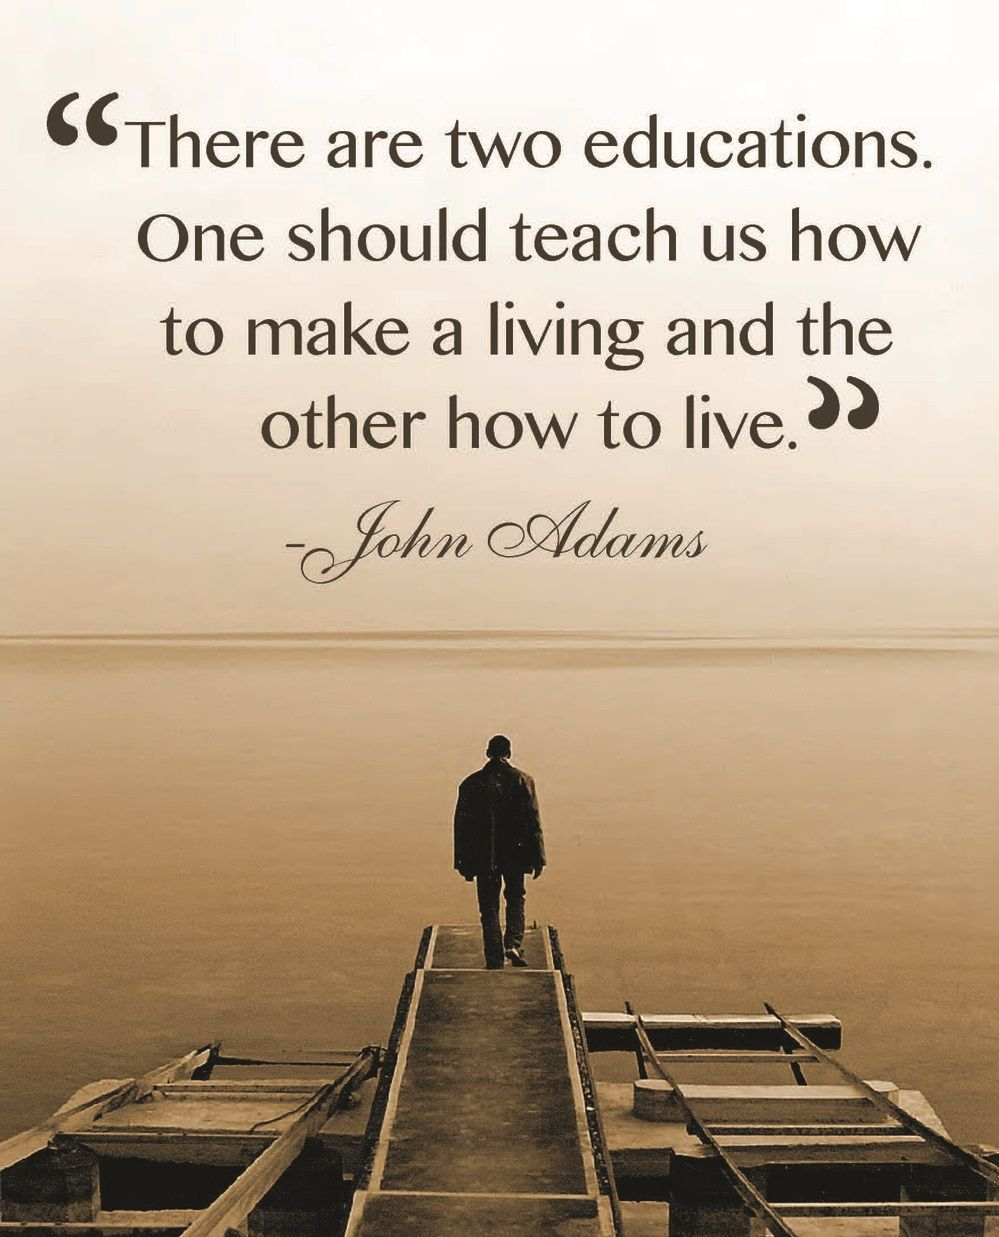 education vs experience quotes quotesgram special education